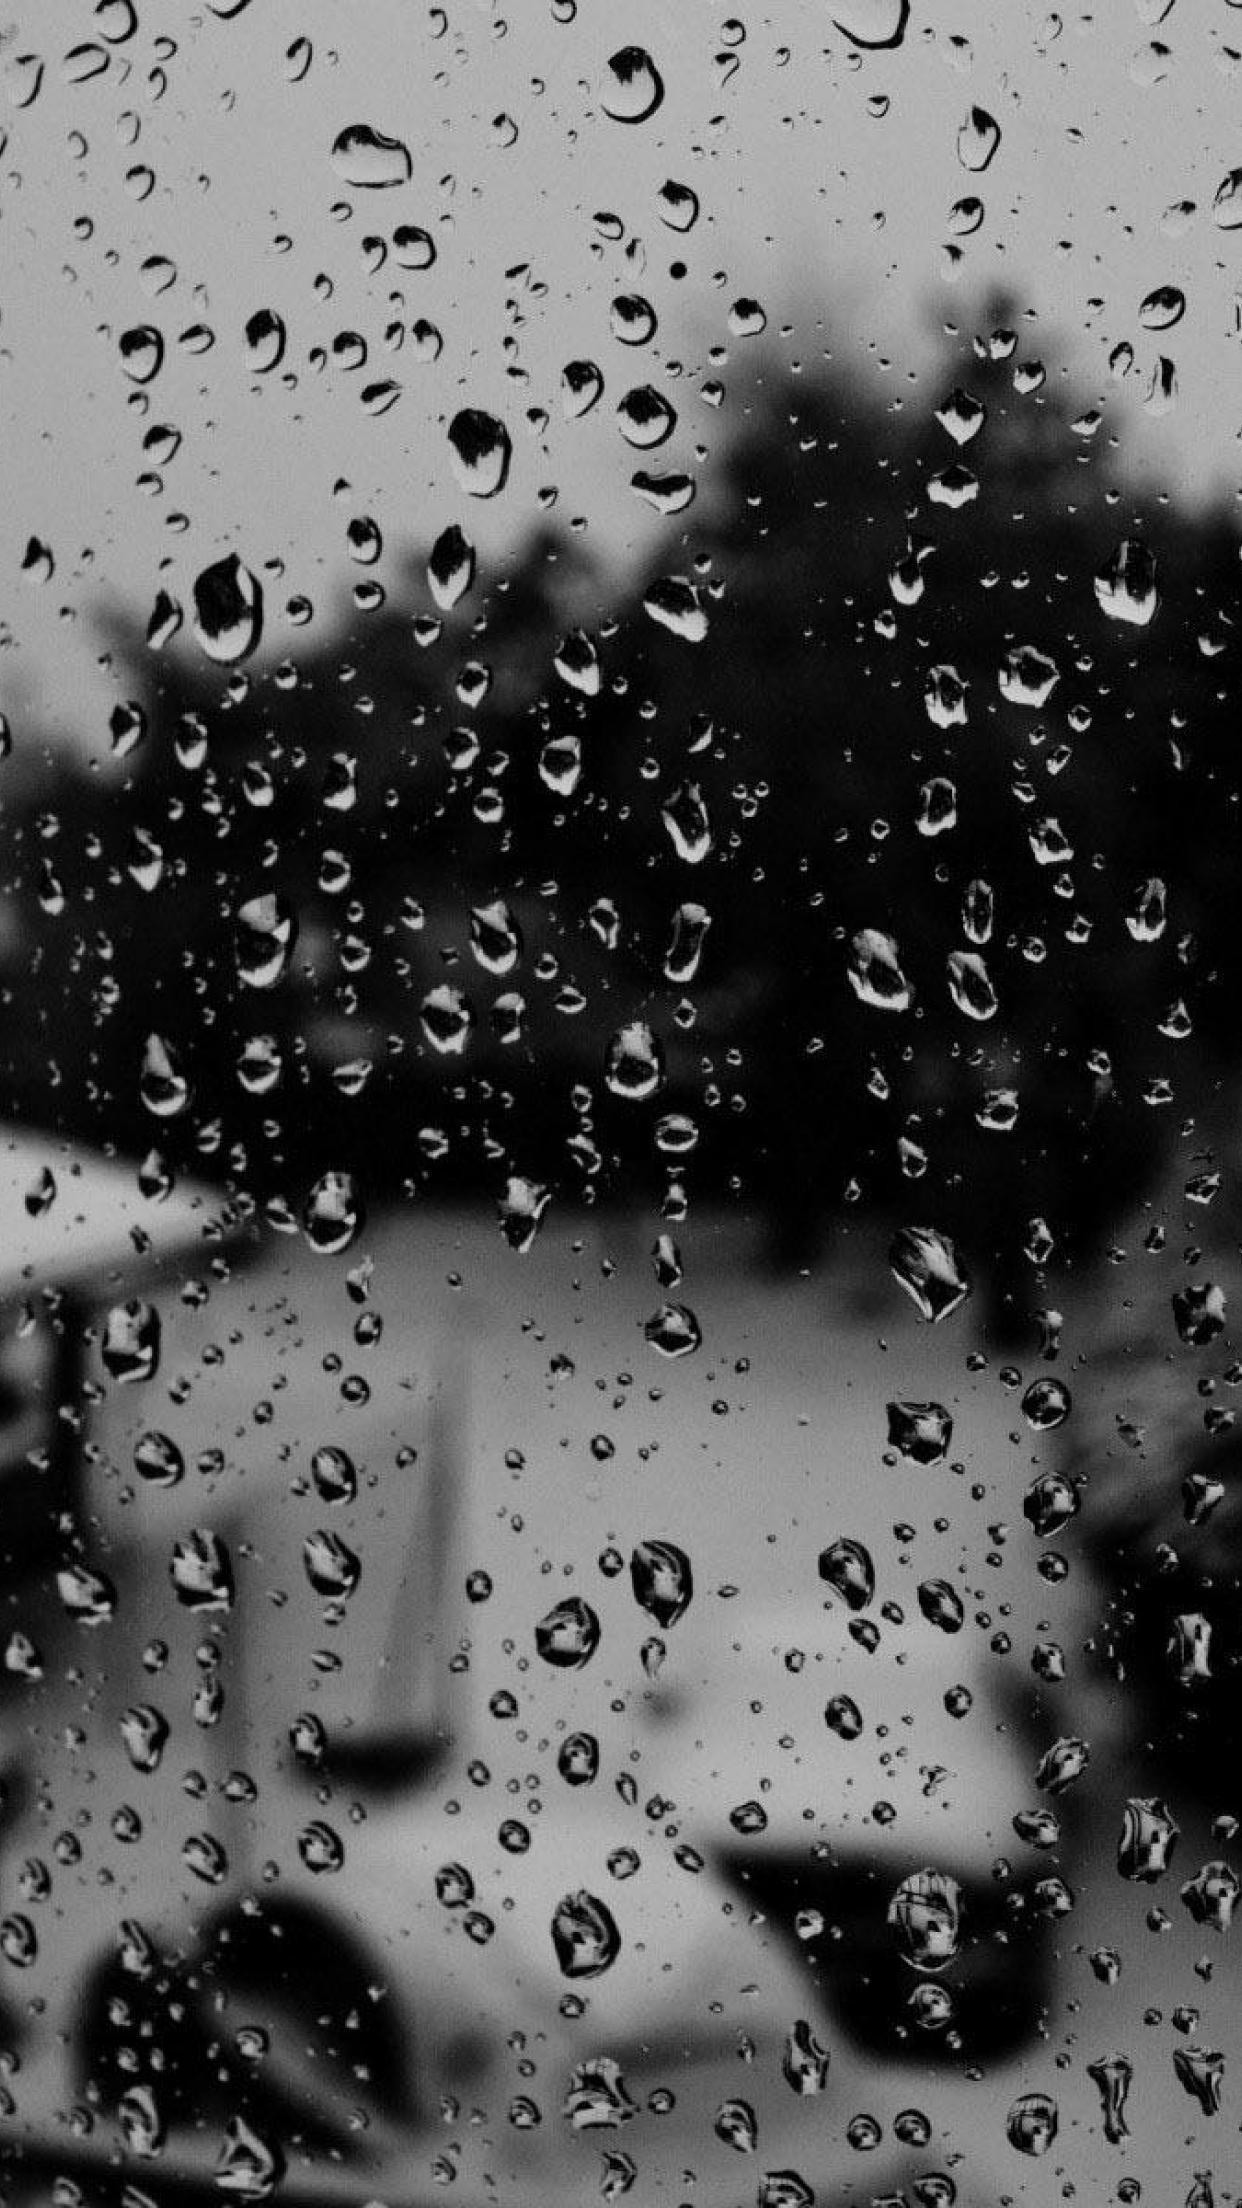 Rain Wallpapers Hd For Mobile Wallpaper Cave